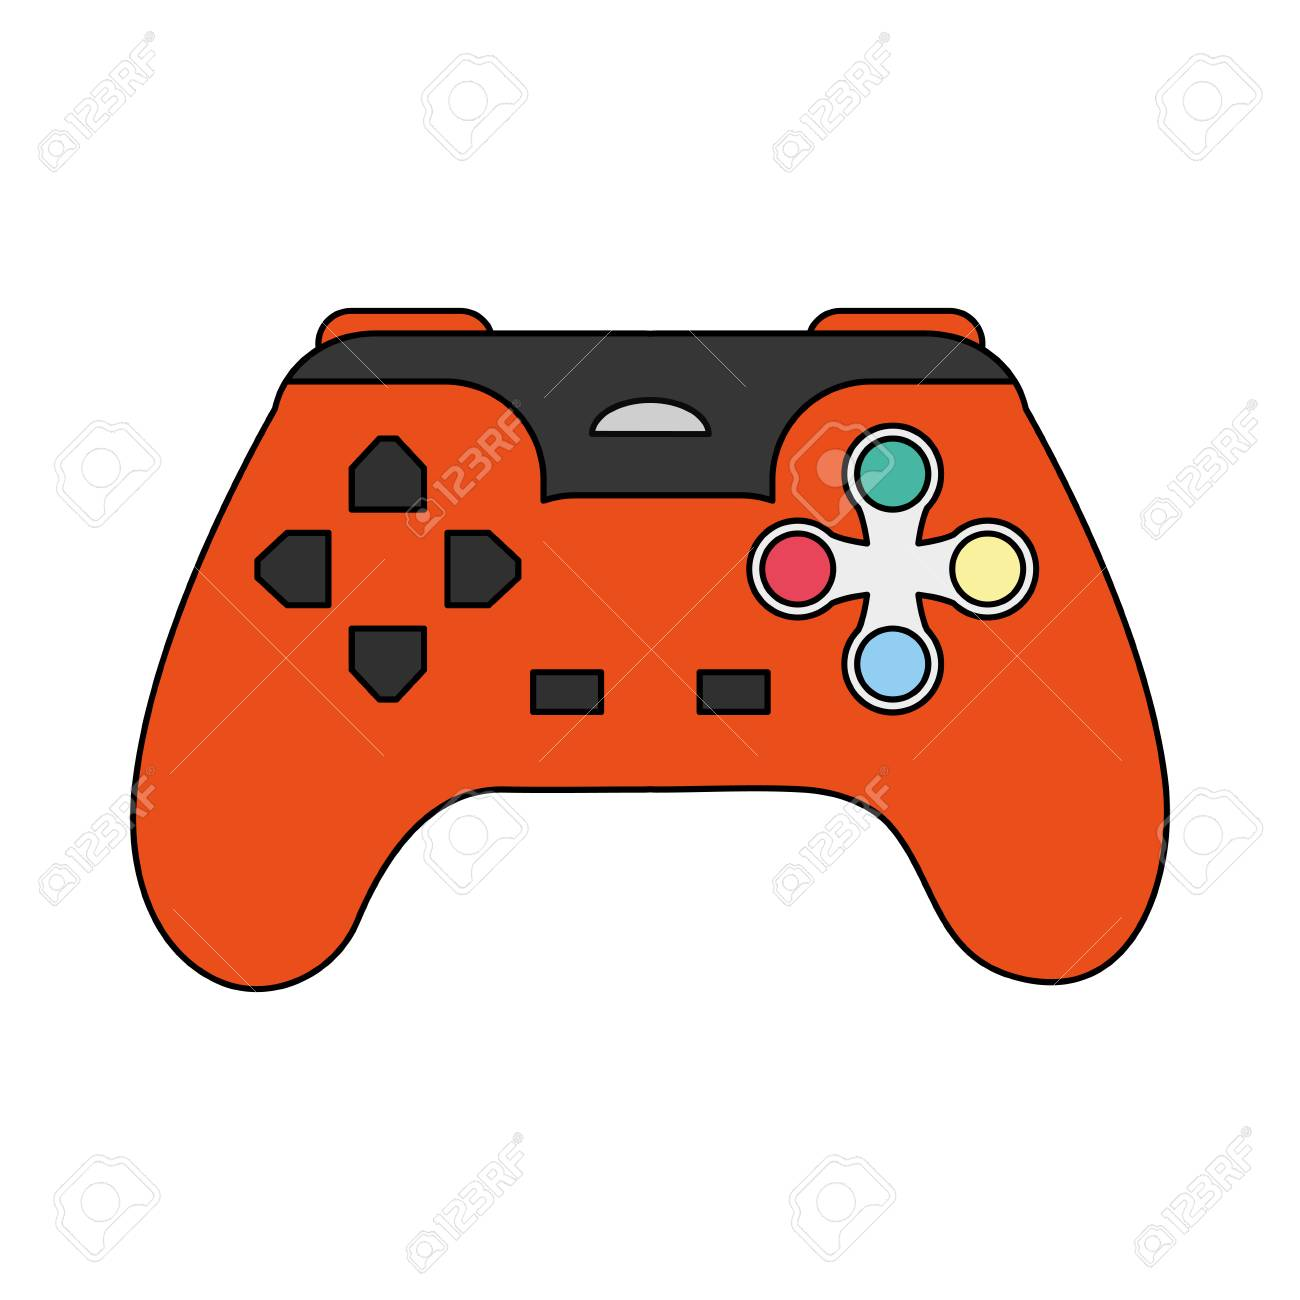 Image Couleur Dessin Anime Controle Jeux Video Vector Illustration